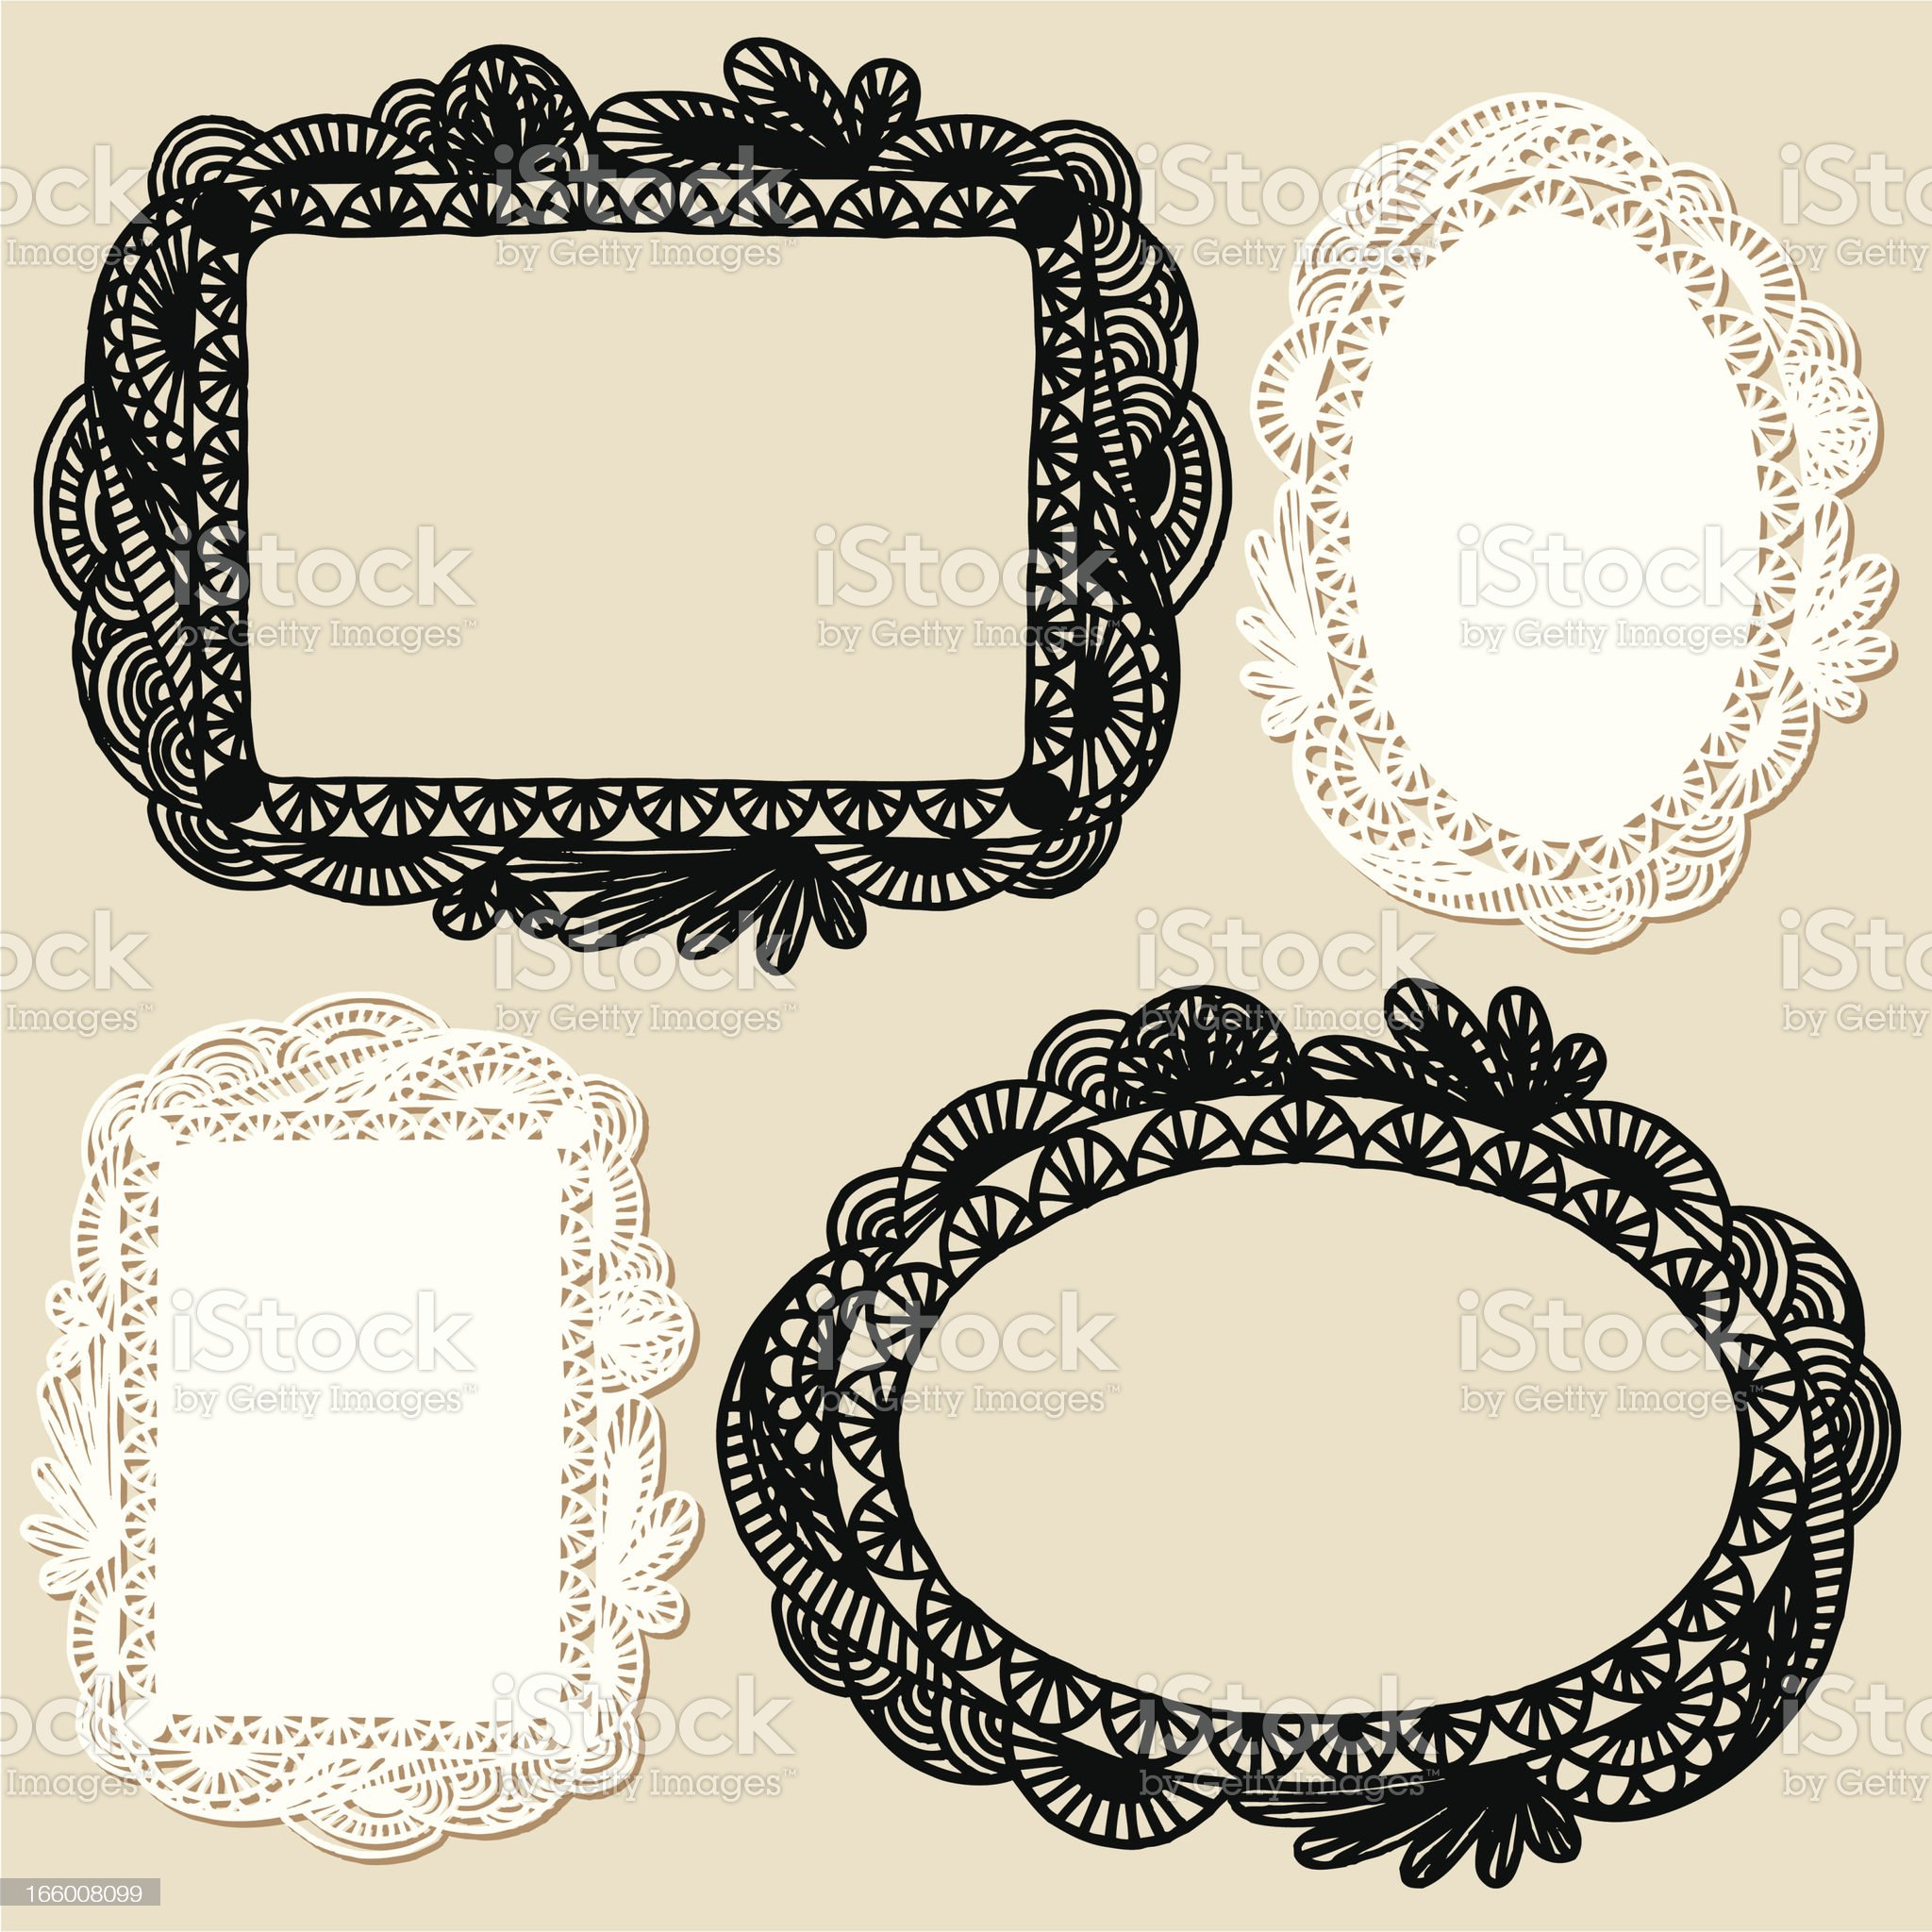 Set of four different hand drawn frames royalty-free stock vector art